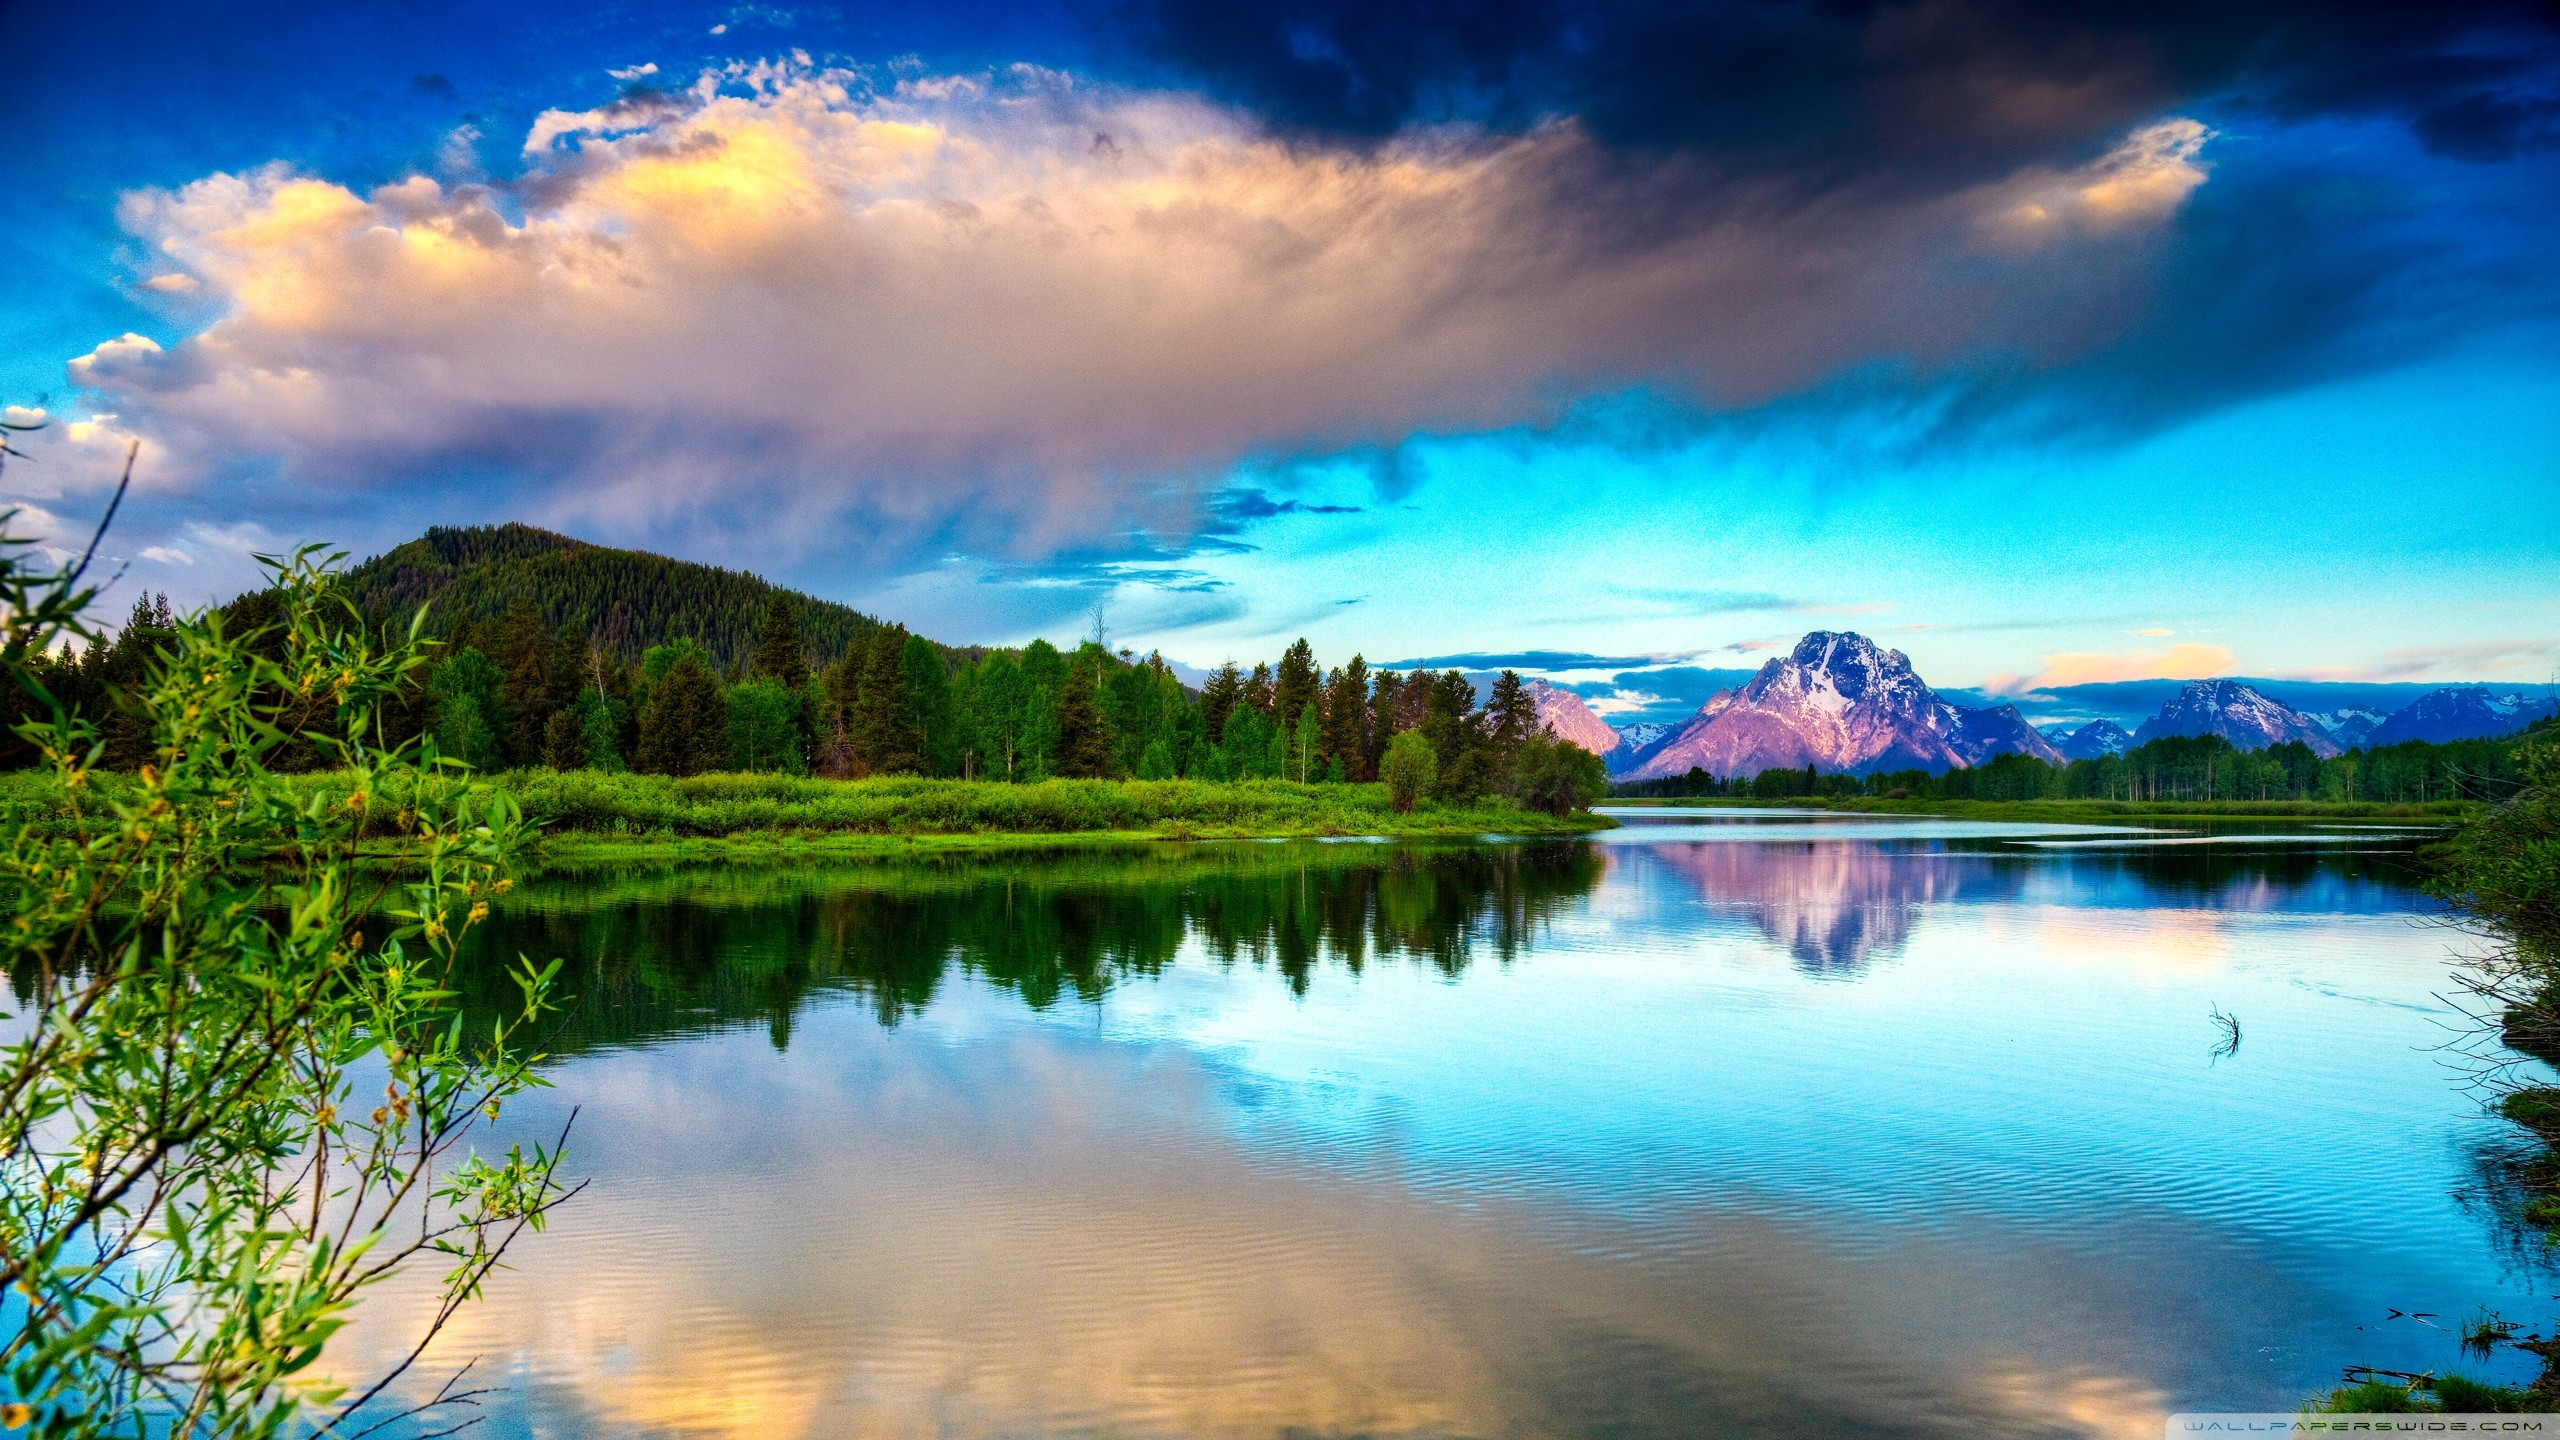 Beautiful, Scenery, Widescreen, High, Quality, Wallpaper, - Landscape Oil Painting Nature , HD Wallpaper & Backgrounds